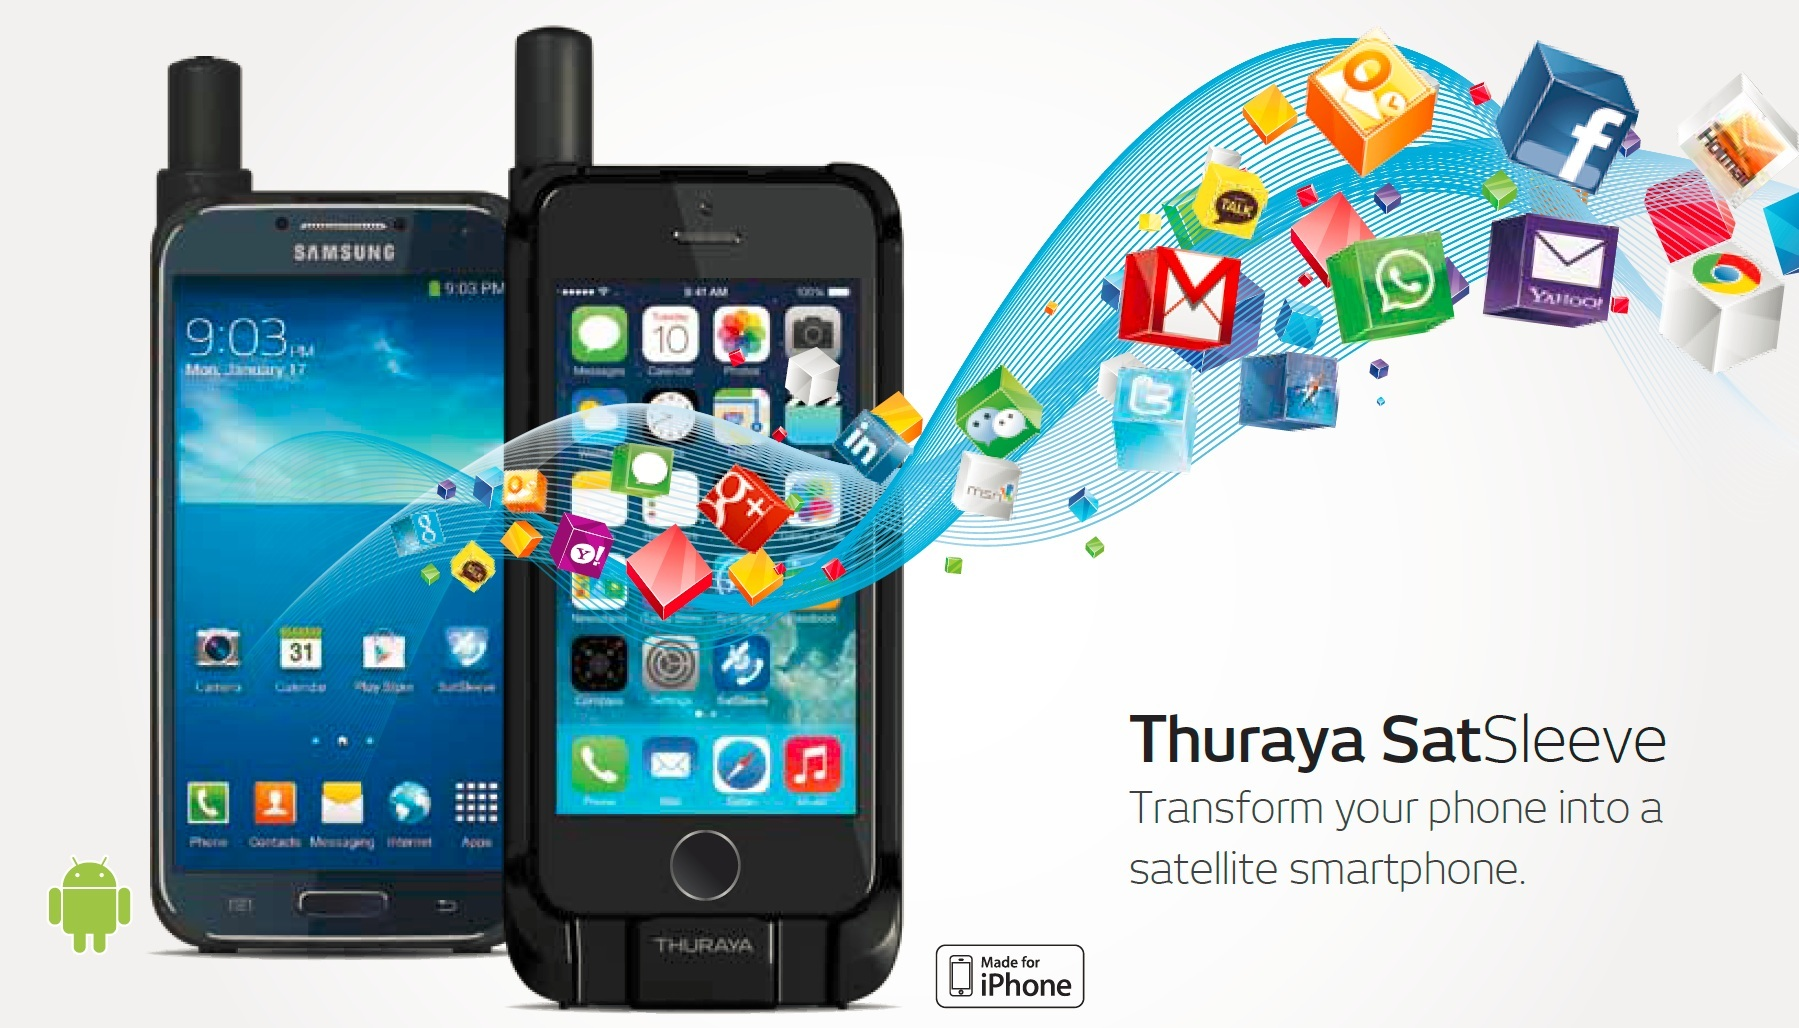 Thuraya satsleeve Samsung Iphone satelliet telefoon